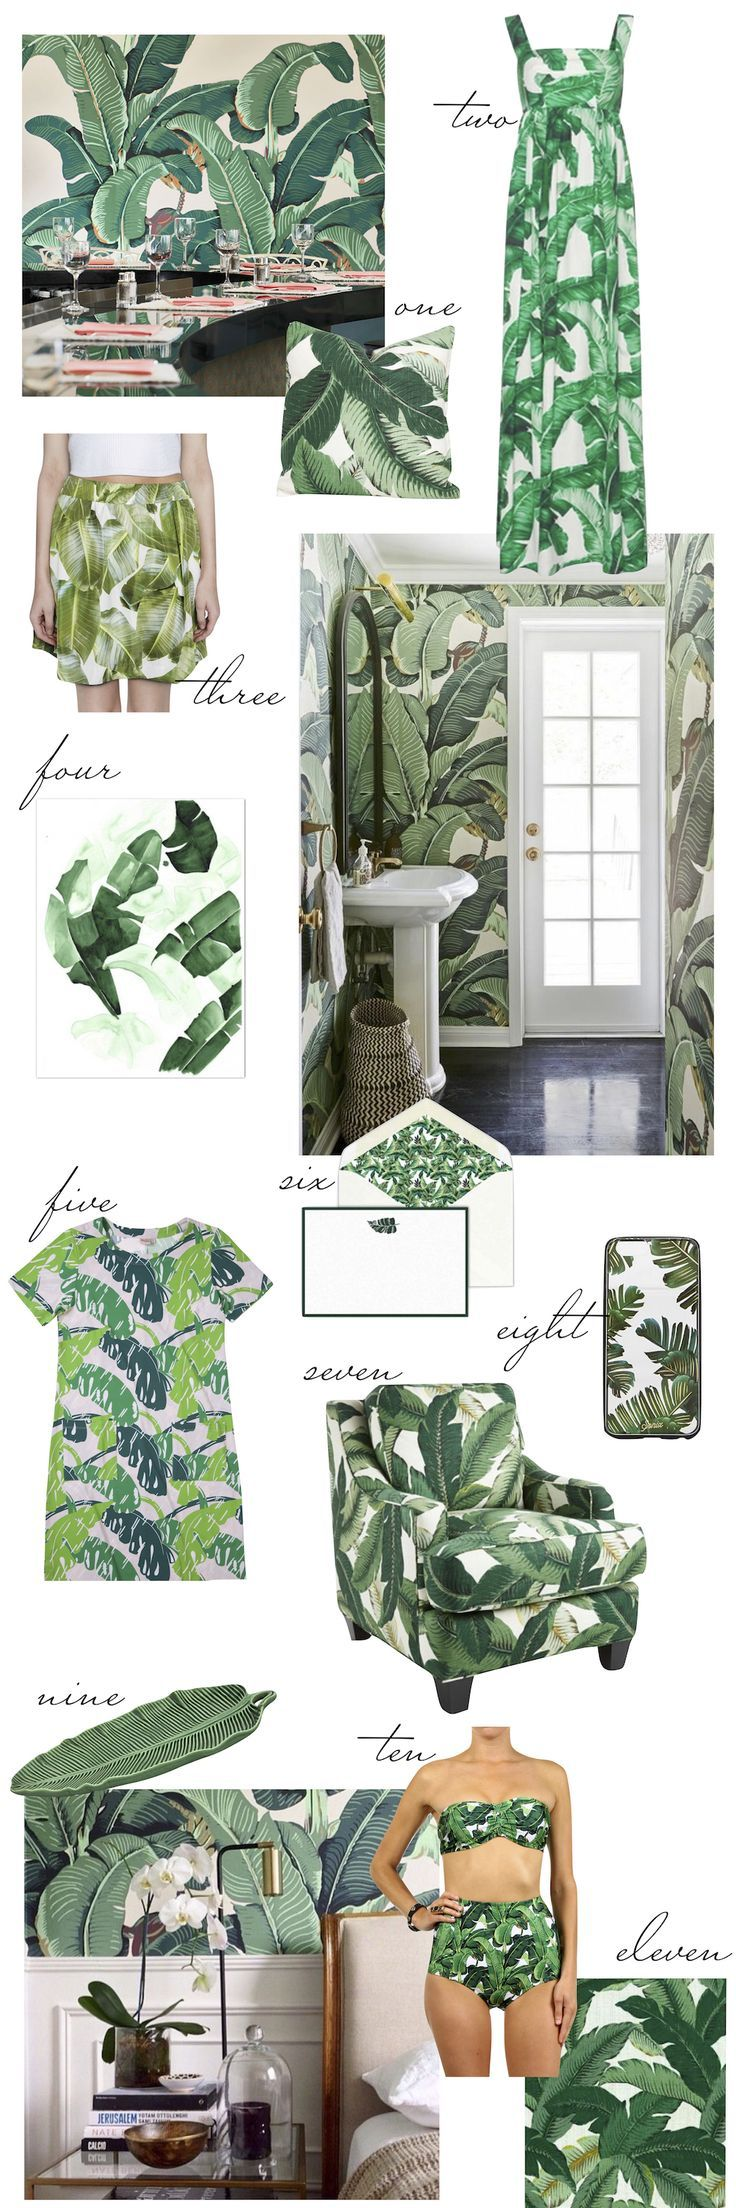 Banana Leaf Print Picks - inspired by the Martinique Wallpaper at the Beverly Hills Hotel.  The Stripe Blog